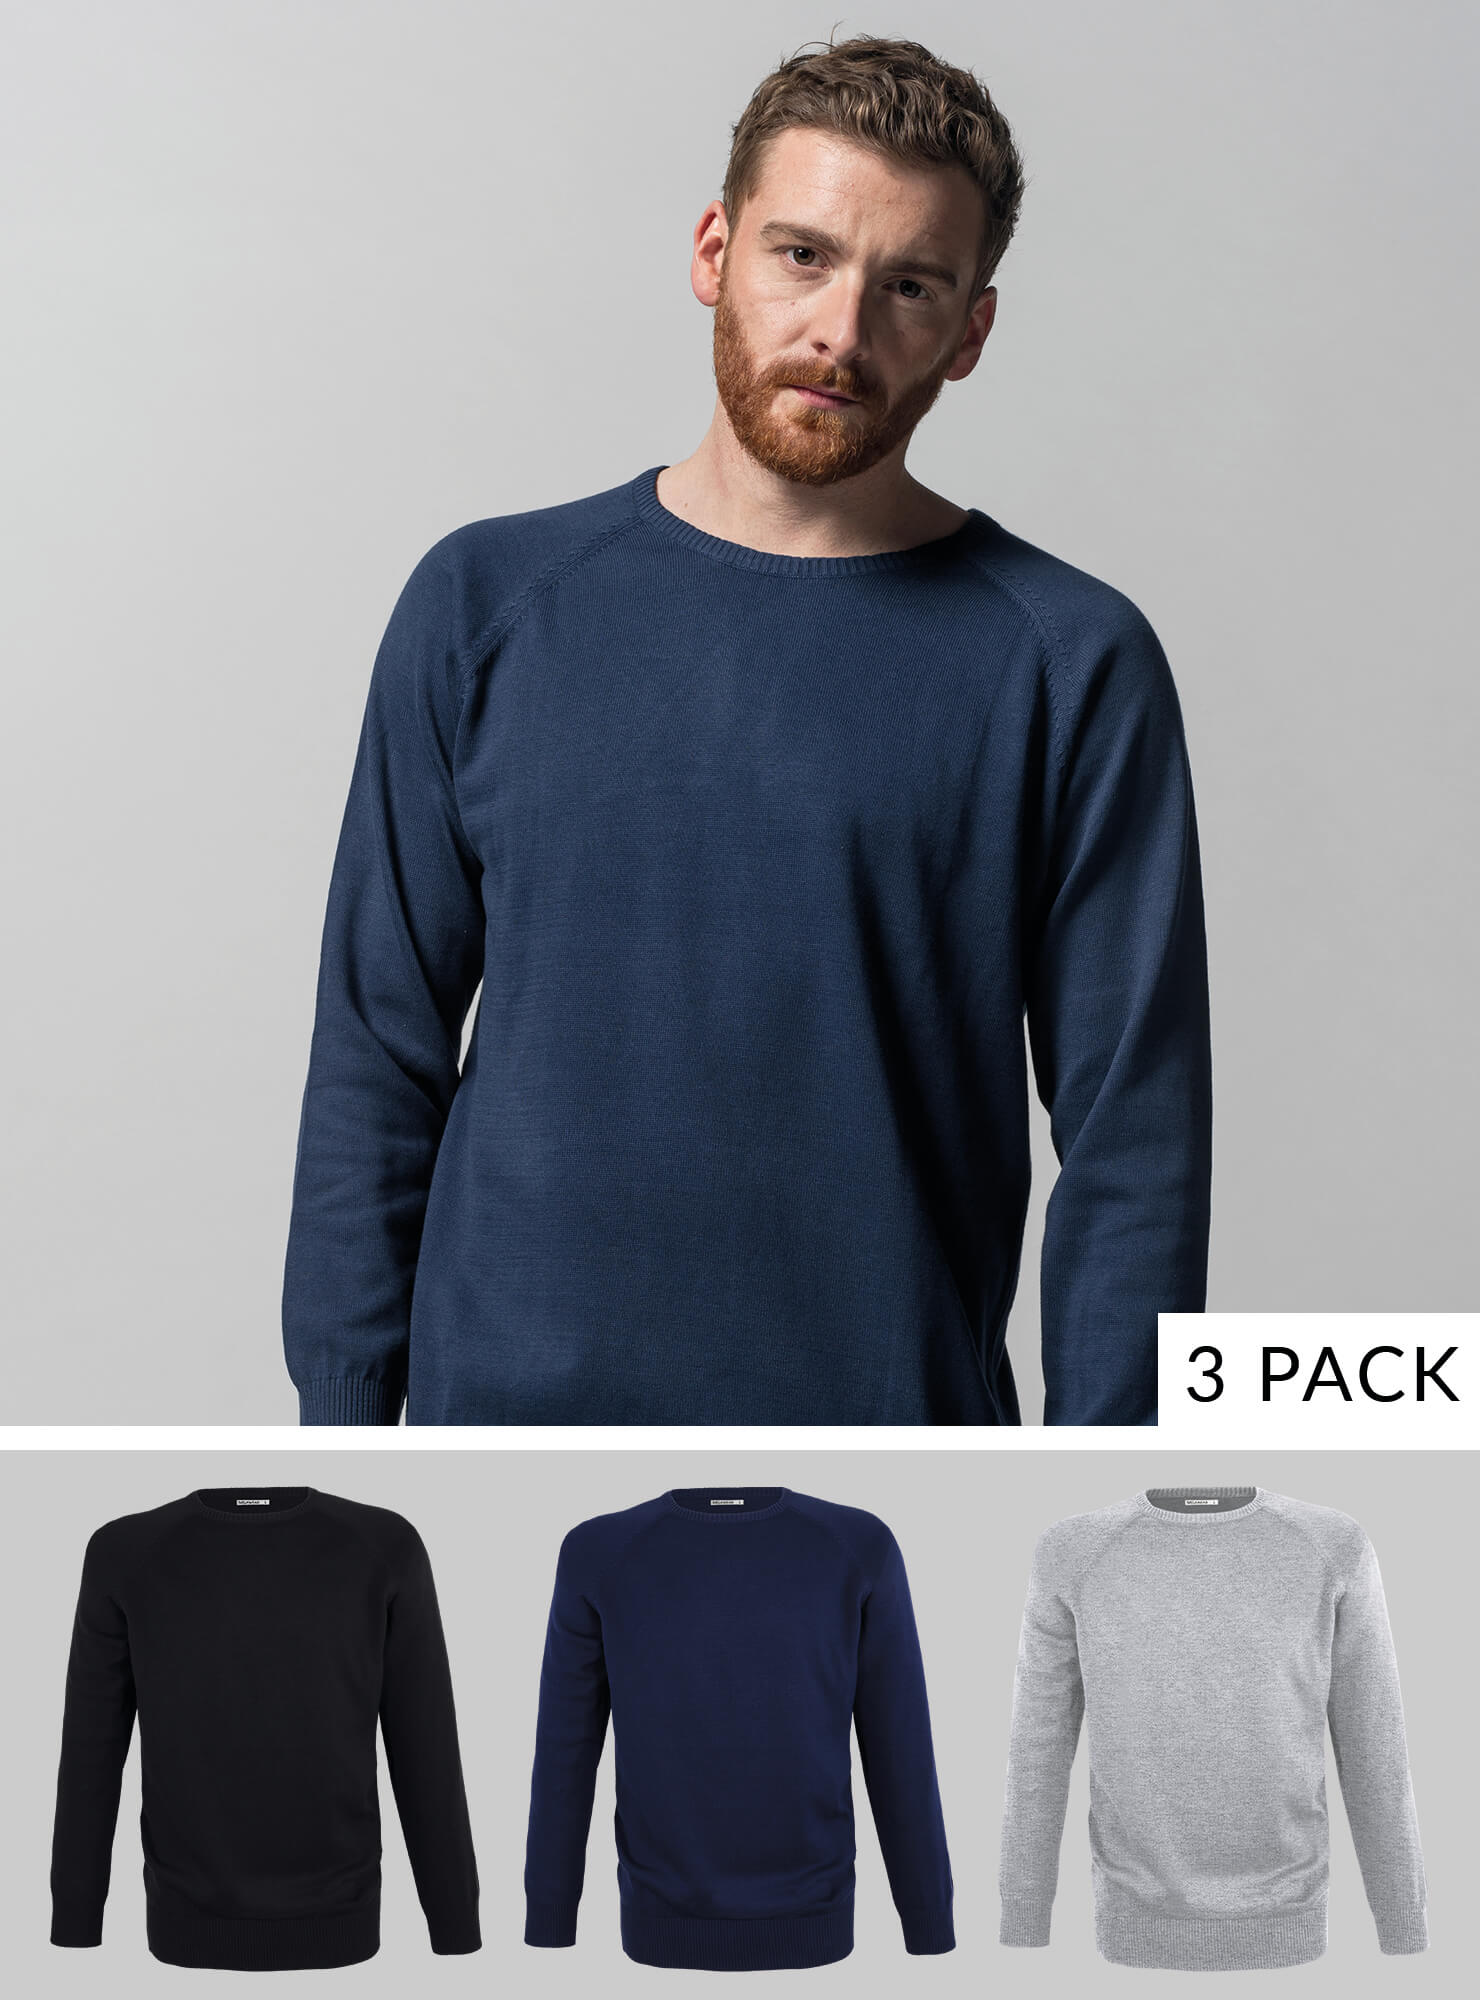 3-Pack Men's Knit Pullover